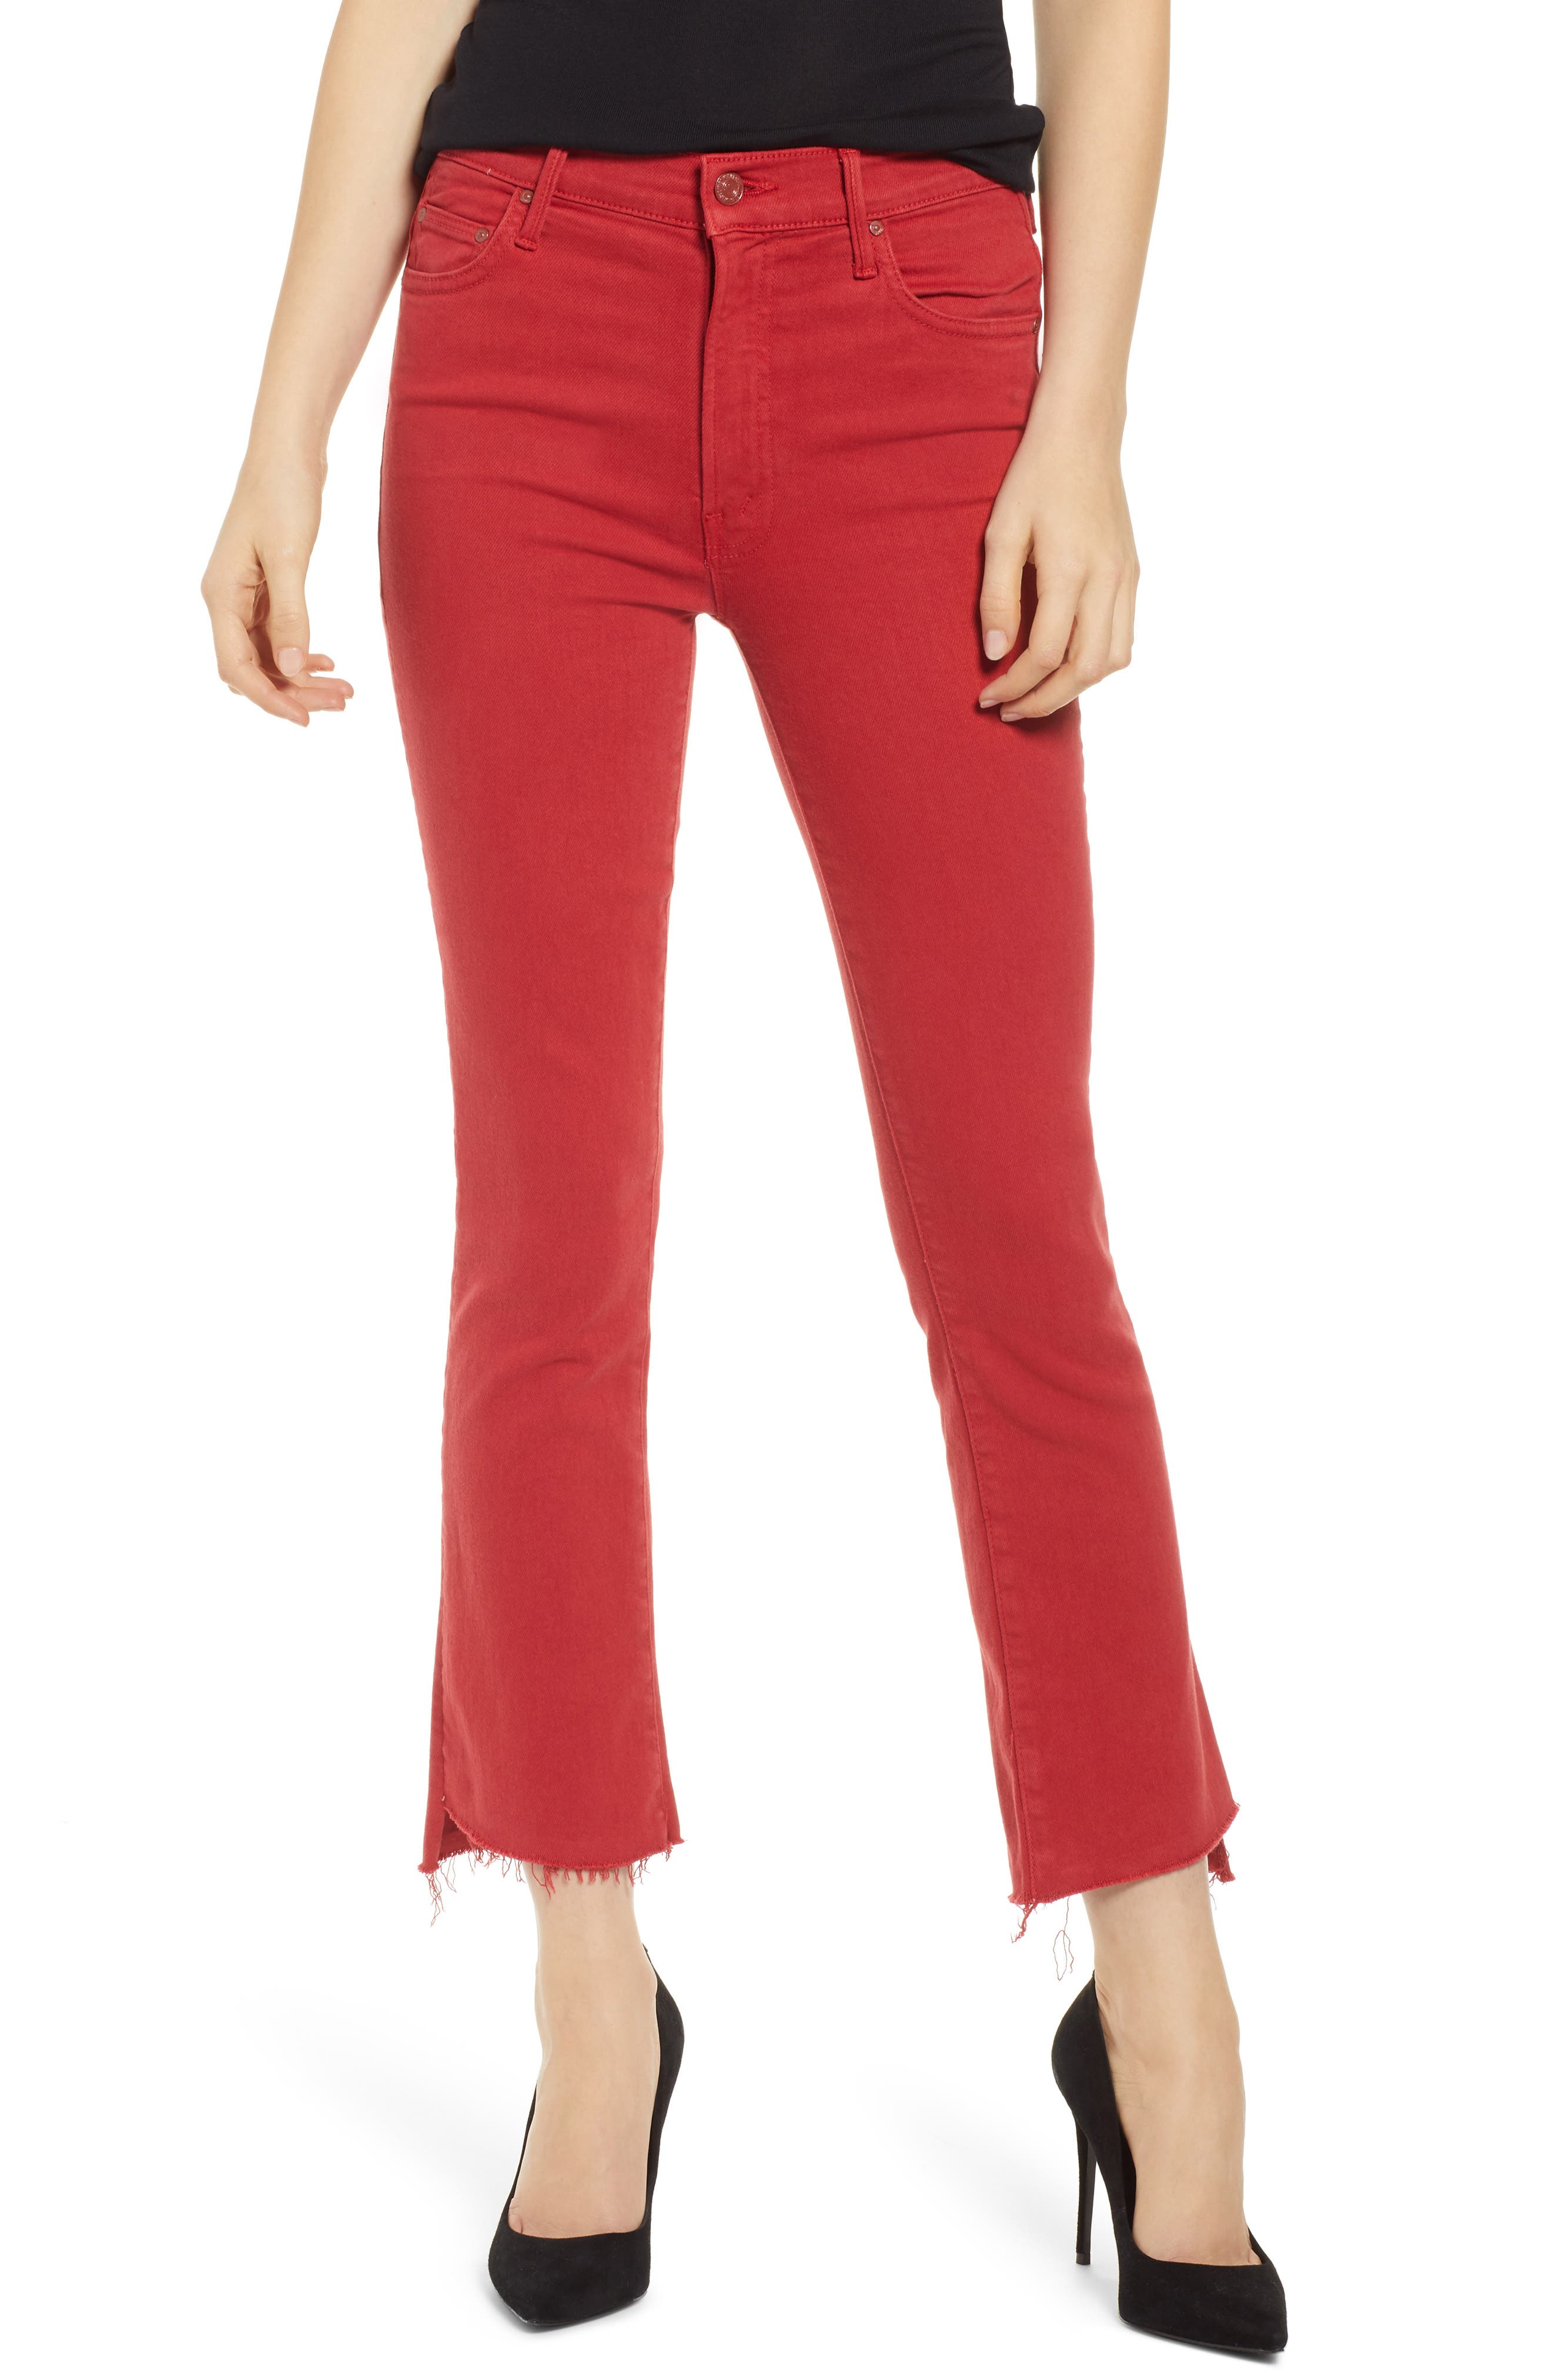 MOTHER, The Insider Step Hem Crop Jeans, Main thumbnail 1, color, HOT ROD RED